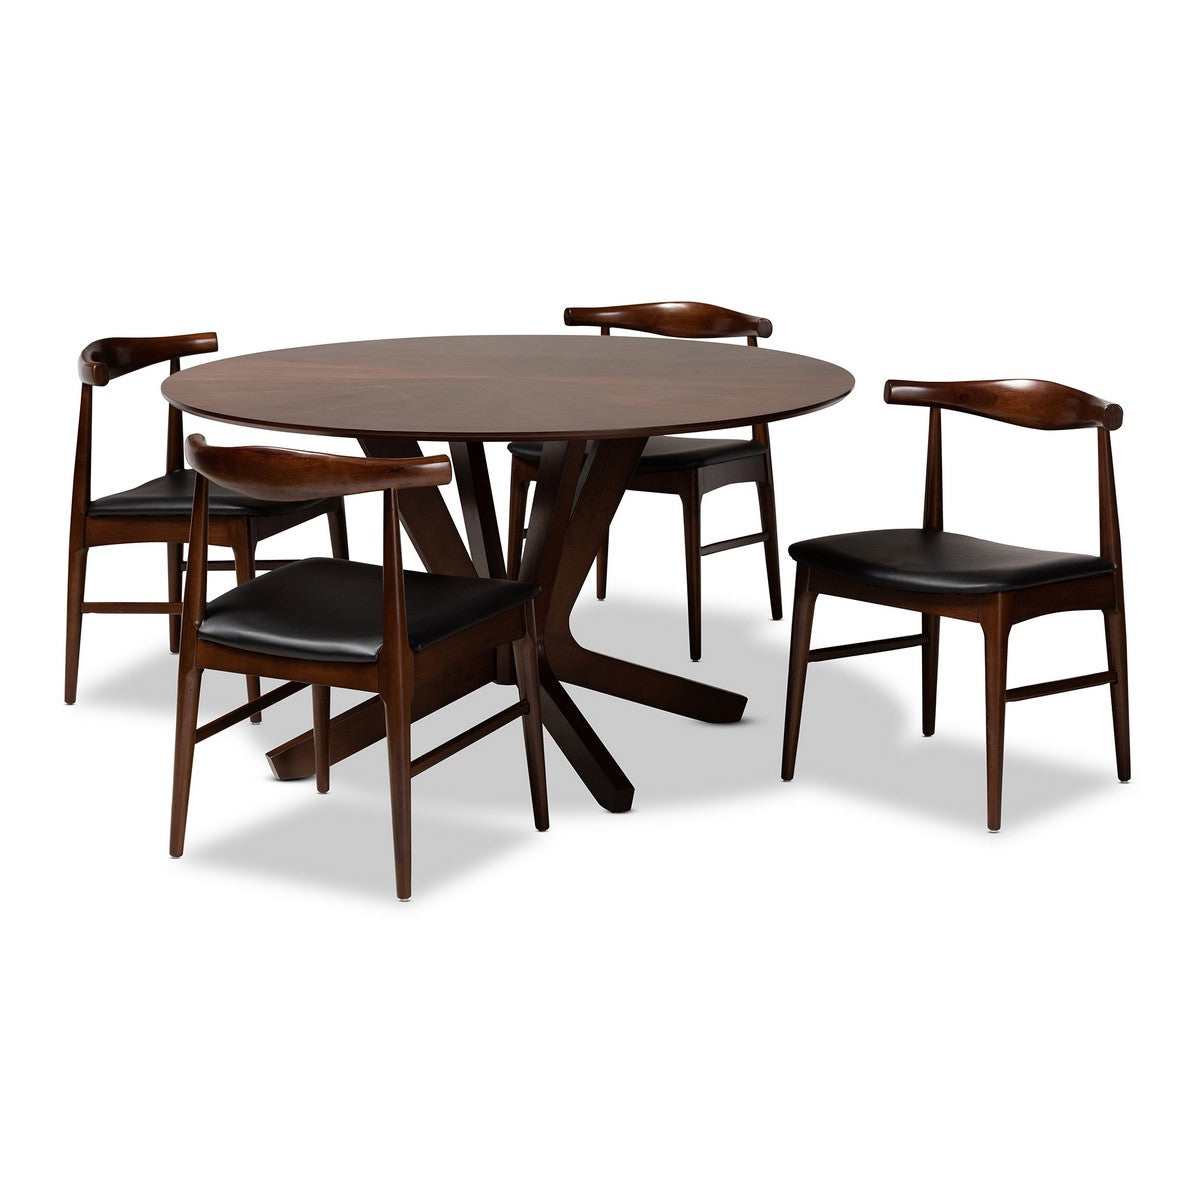 Baxton Studio Berlin Mid-Century Modern Black Faux Leather Upholstered Walnut Finished 5-Piece Wood Dining Set Baxton Studio-Dining Sets-Minimal And Modern - 1